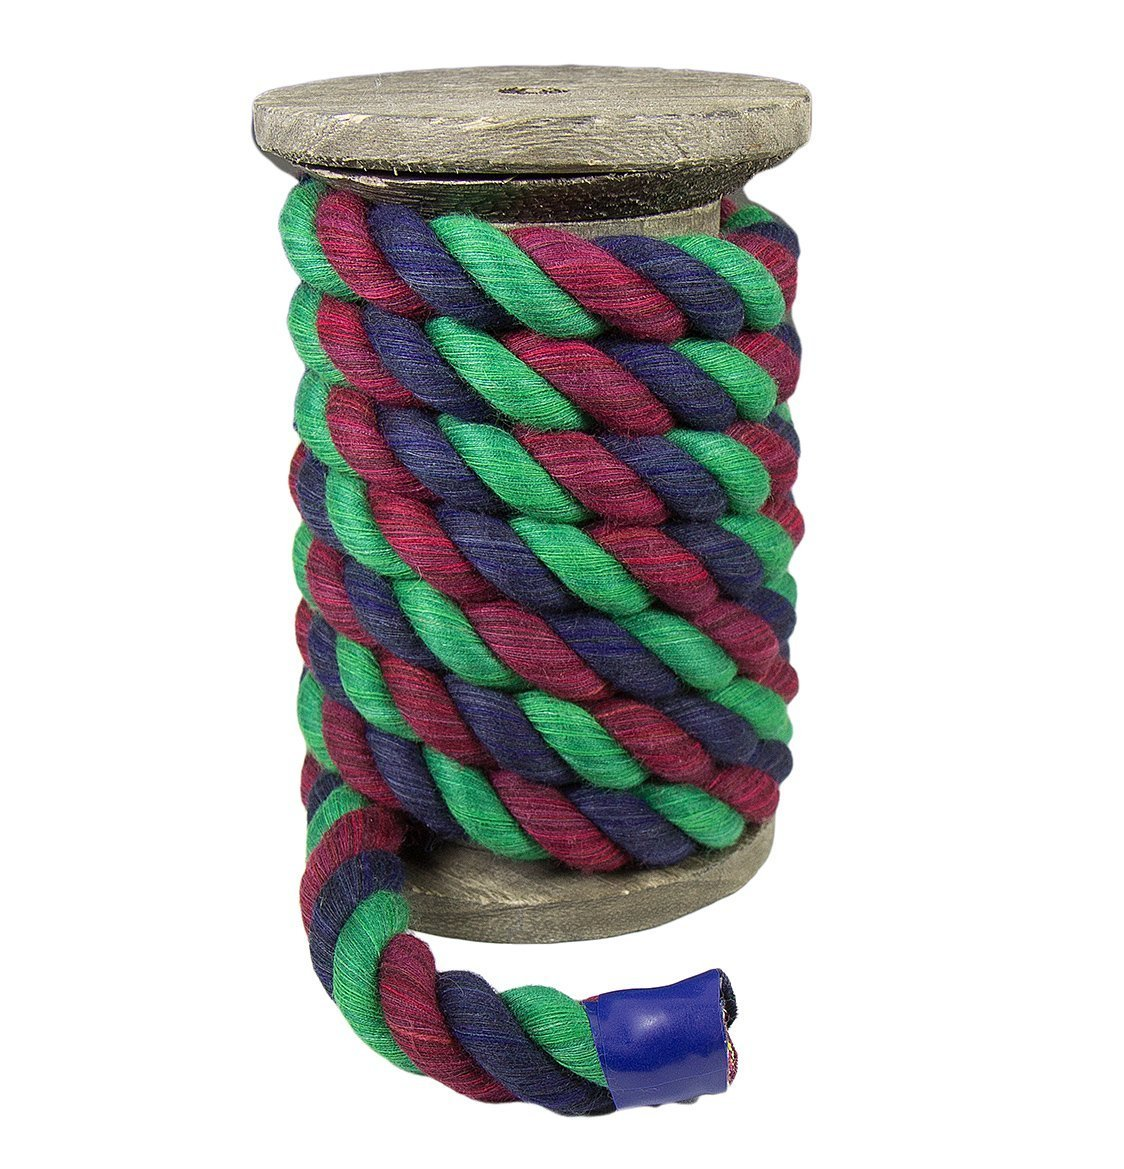 Custom Color Triple-Strand Rope and Cordage for Sport Pet Toys Ravenox Colorful Twisted Cotton Rope by The Foot and Diameter Made in The USA D/écor Macram/é and Indoor Outdoor Use Crafts